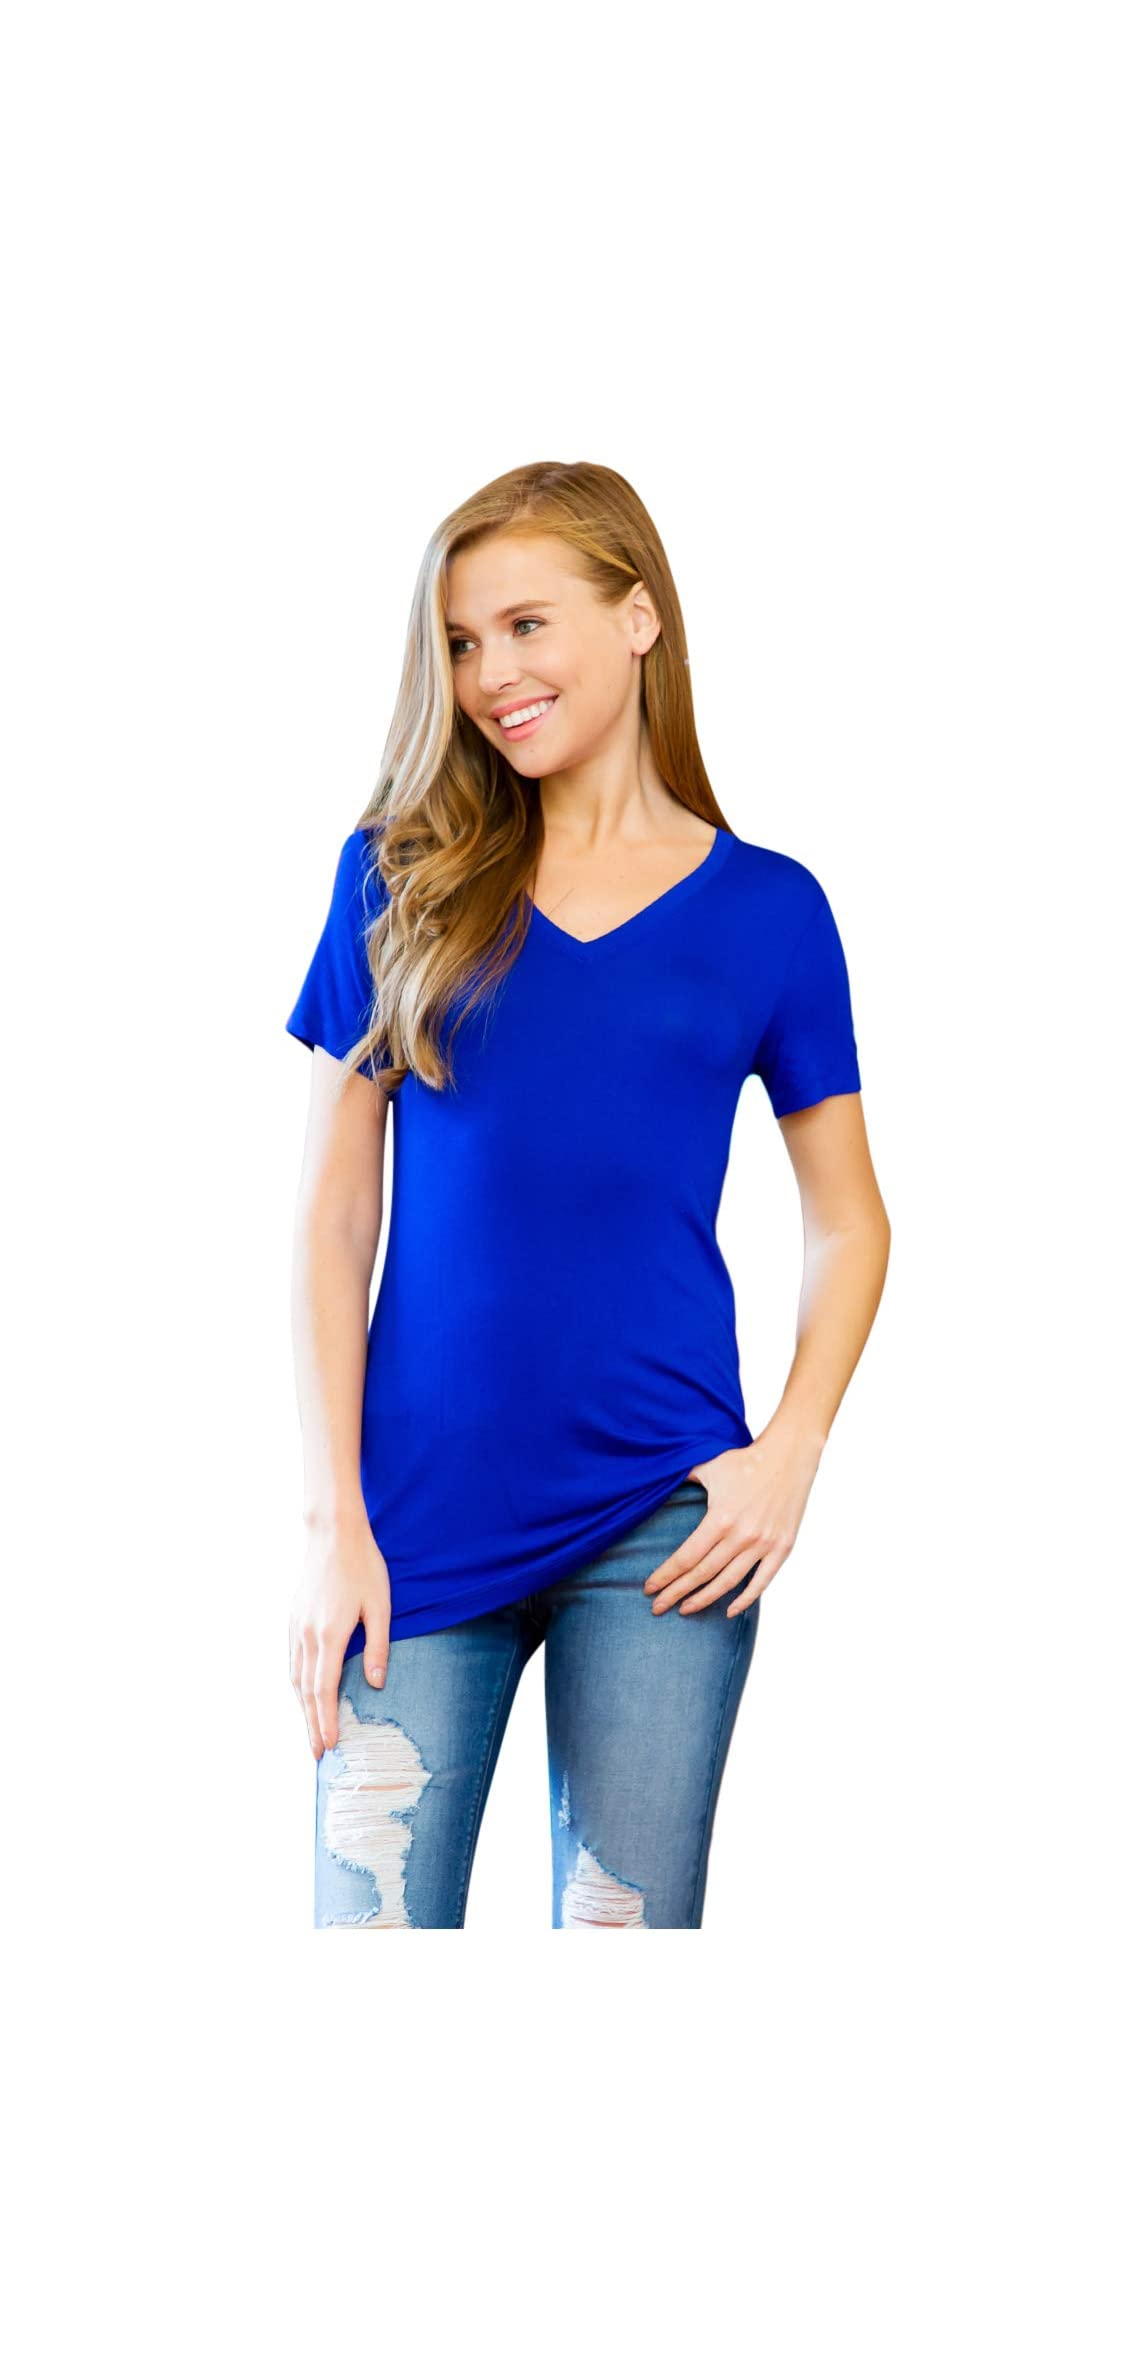 Women's Soft Casual T-shirt Top - Solid Color Basic